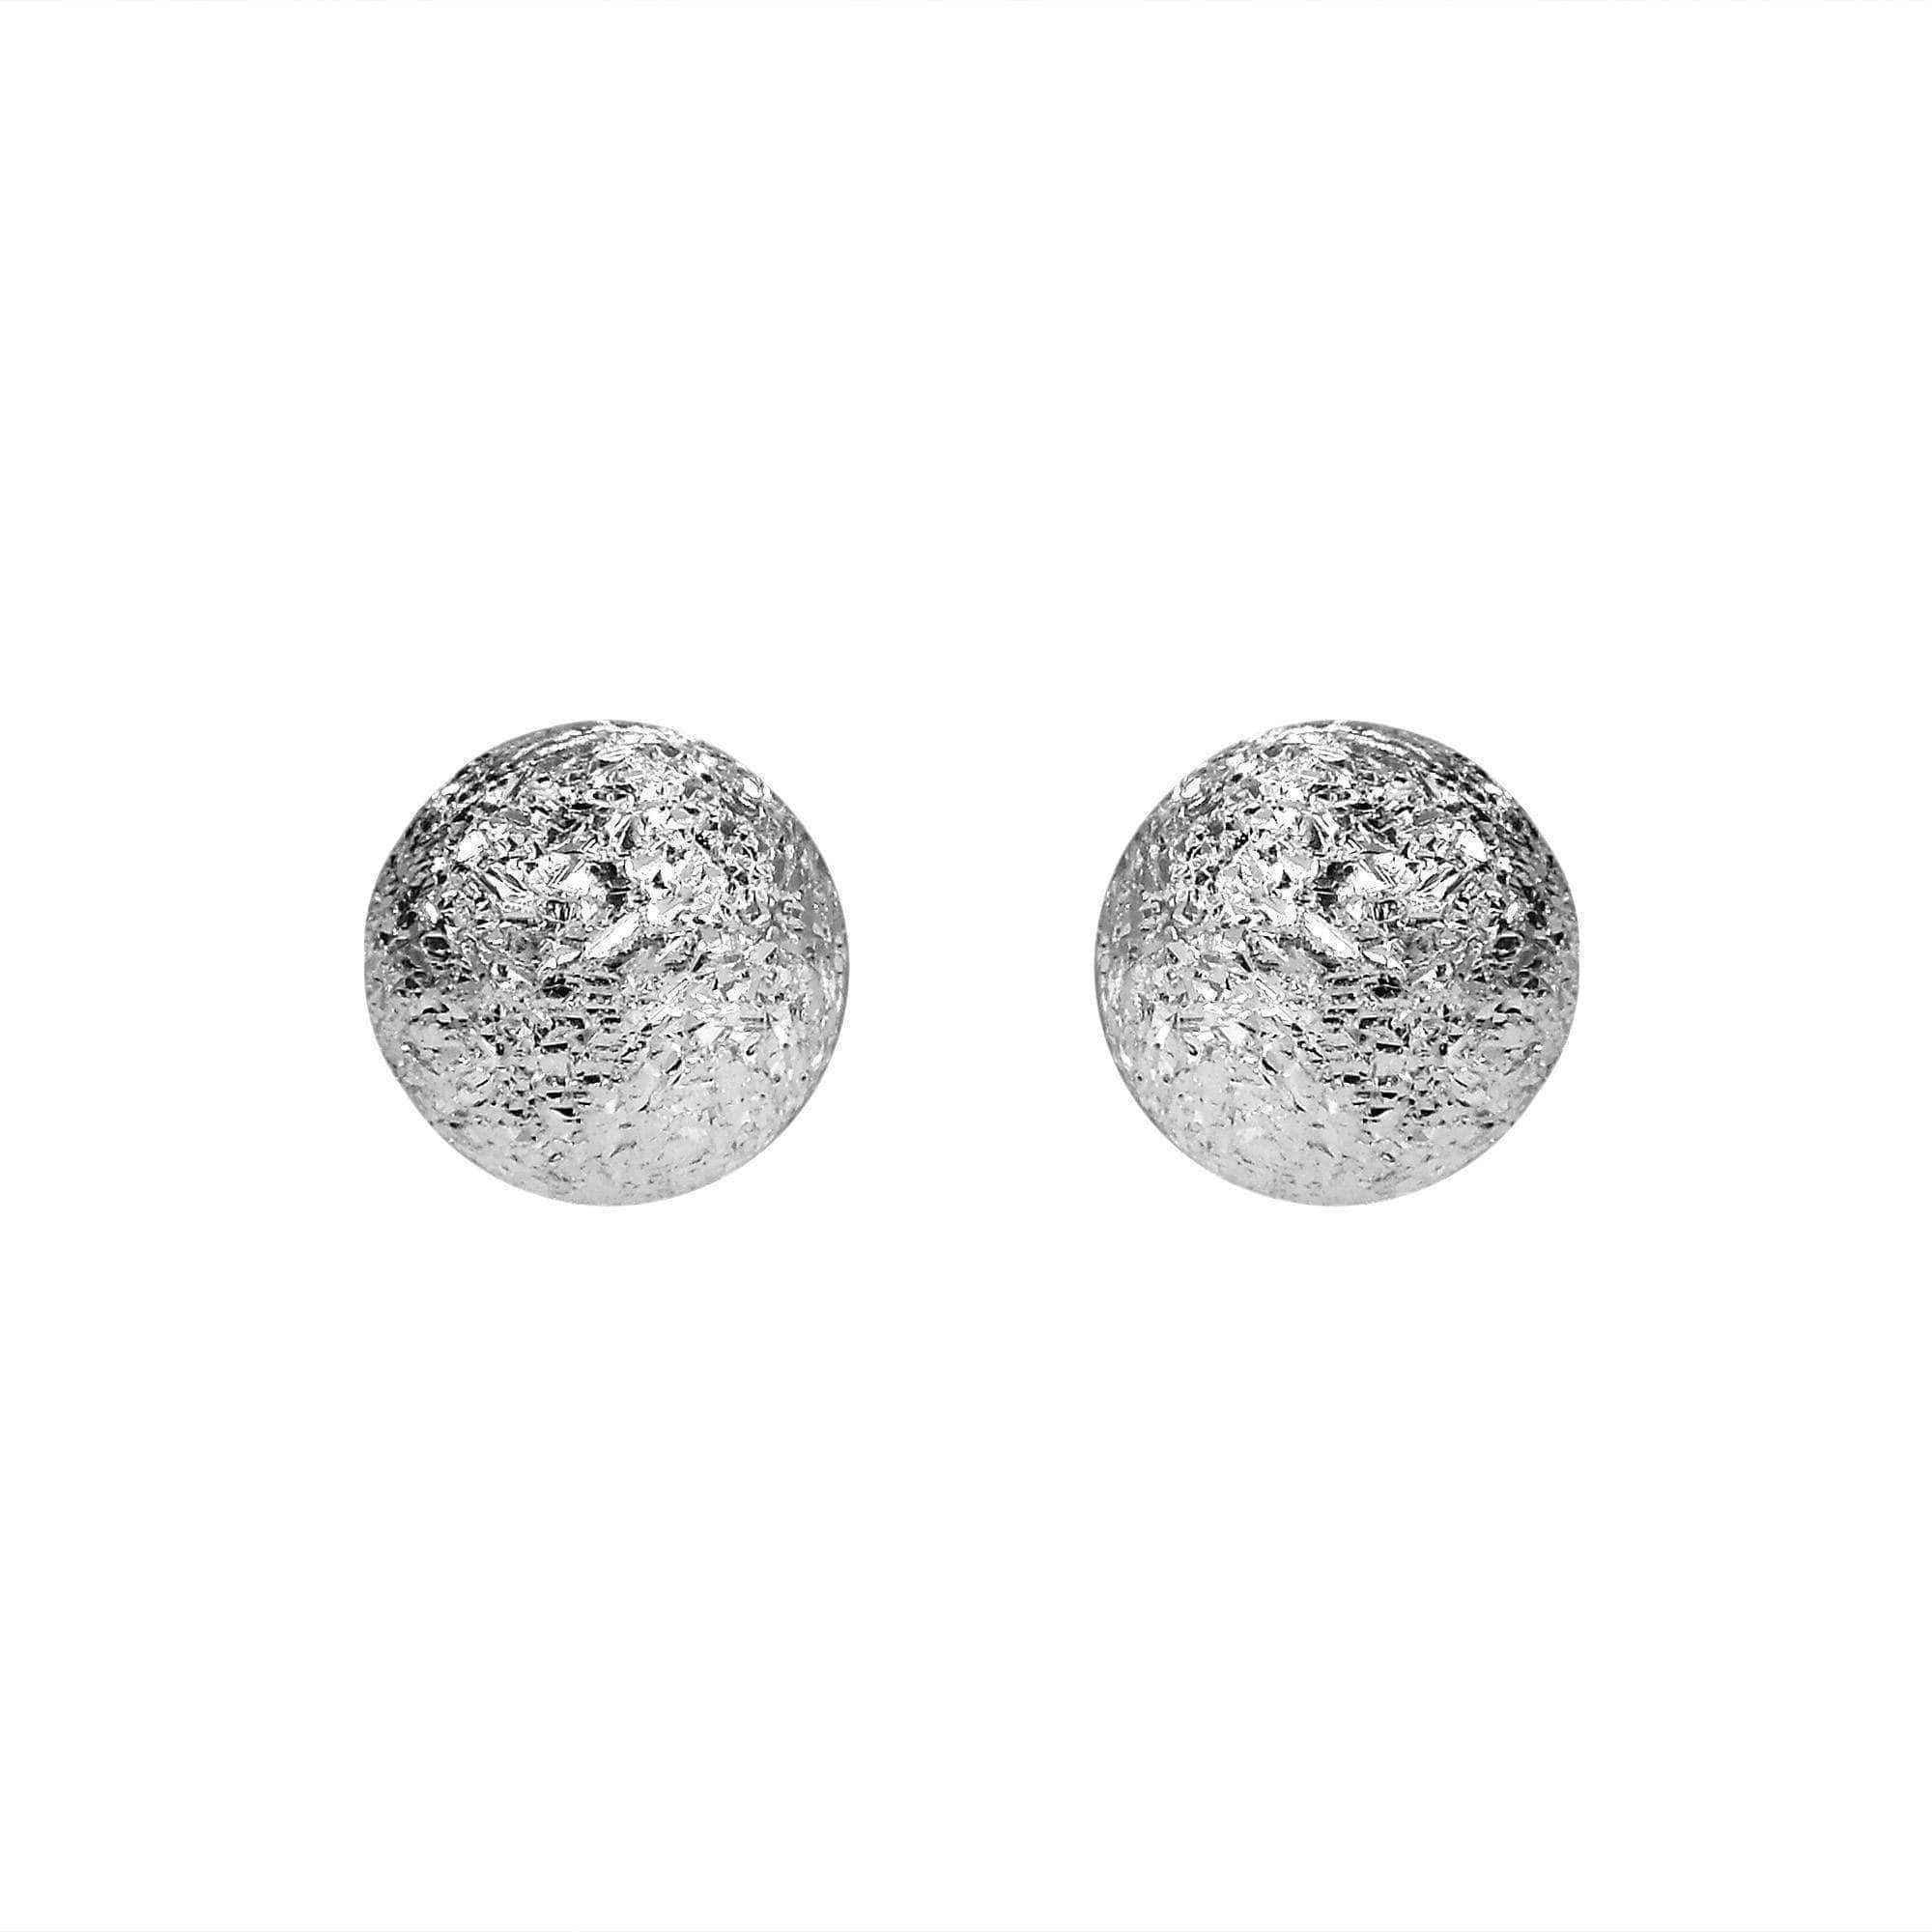 garvin ice oxidized diamond stud products earrings elizabeth collections coin concave silver egf szor